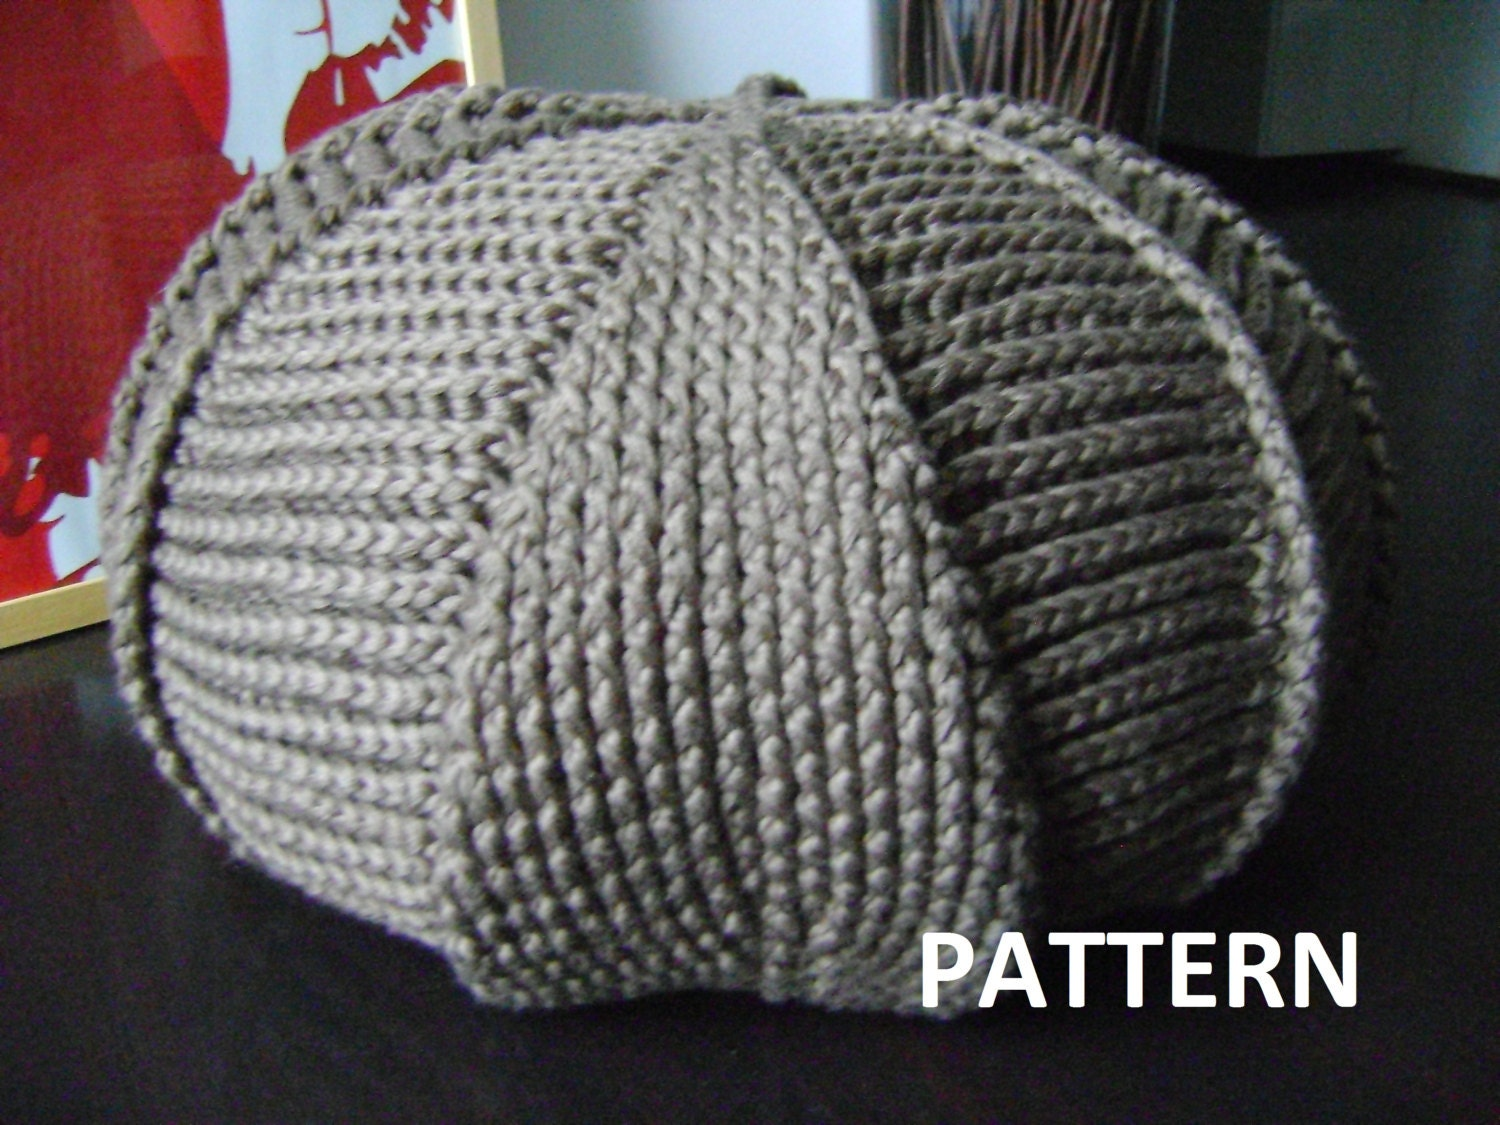 Knitted Ribbing Patterns : PDF Pattern Large Crochet Pouf Poof Ottoman Footstool by isWoolish